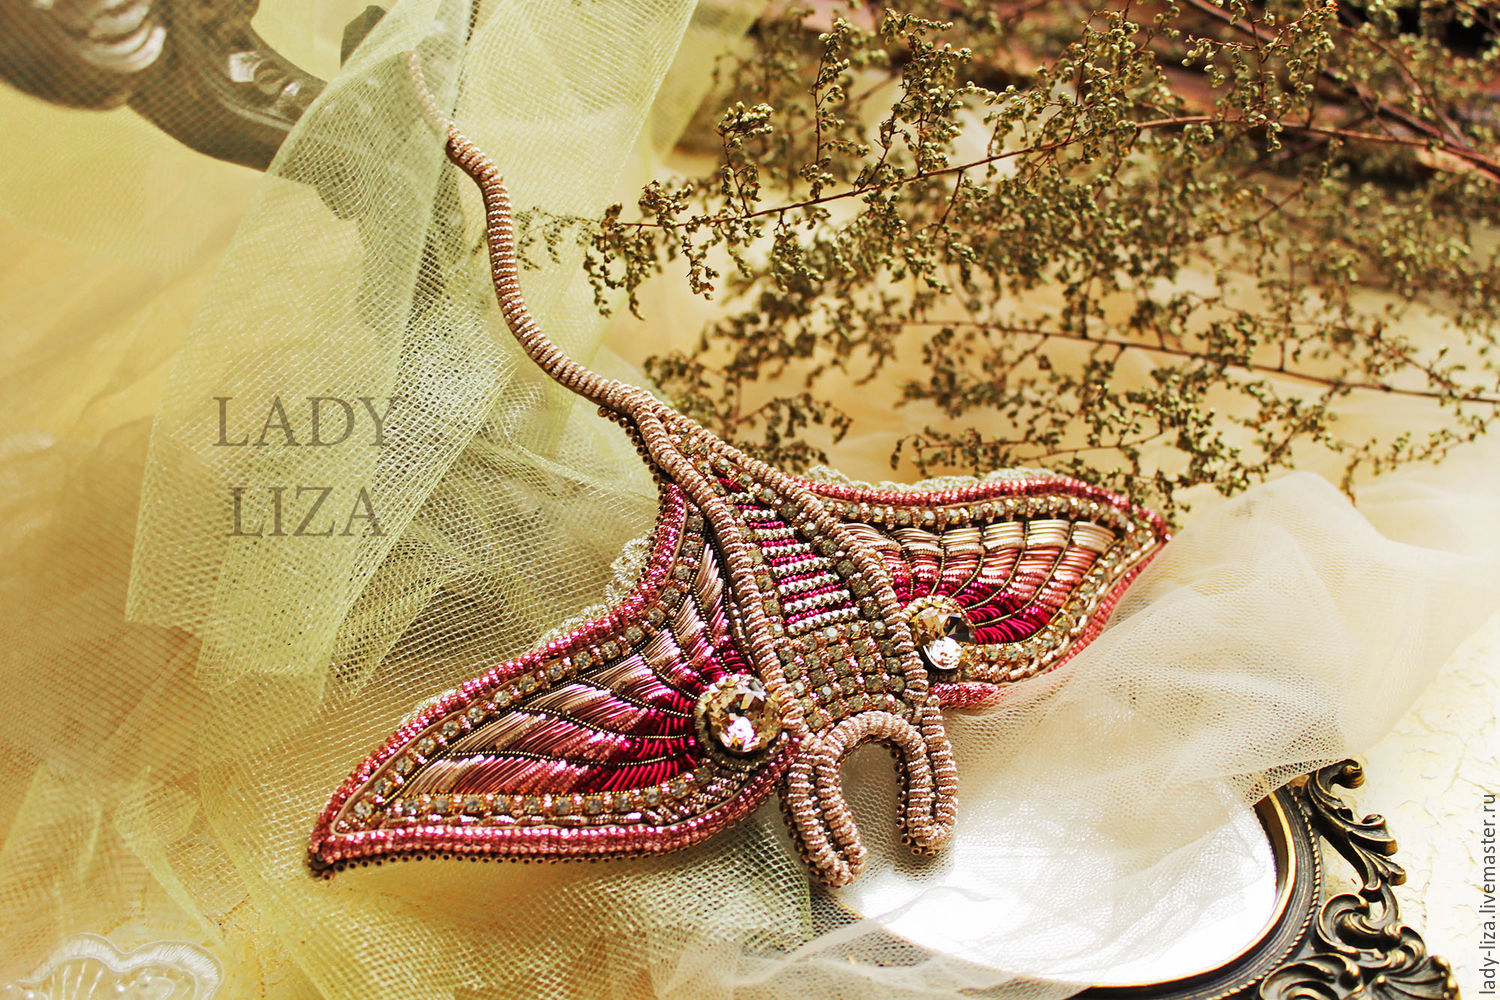 To buy a brooch, brooch Stingray brooch to buy, soutache jewelry, brooch embroidery brooch bead brooch, buy brooch embroidery, beaded lace brooch, embroidered beaded brooch beading, gold embroidery, b